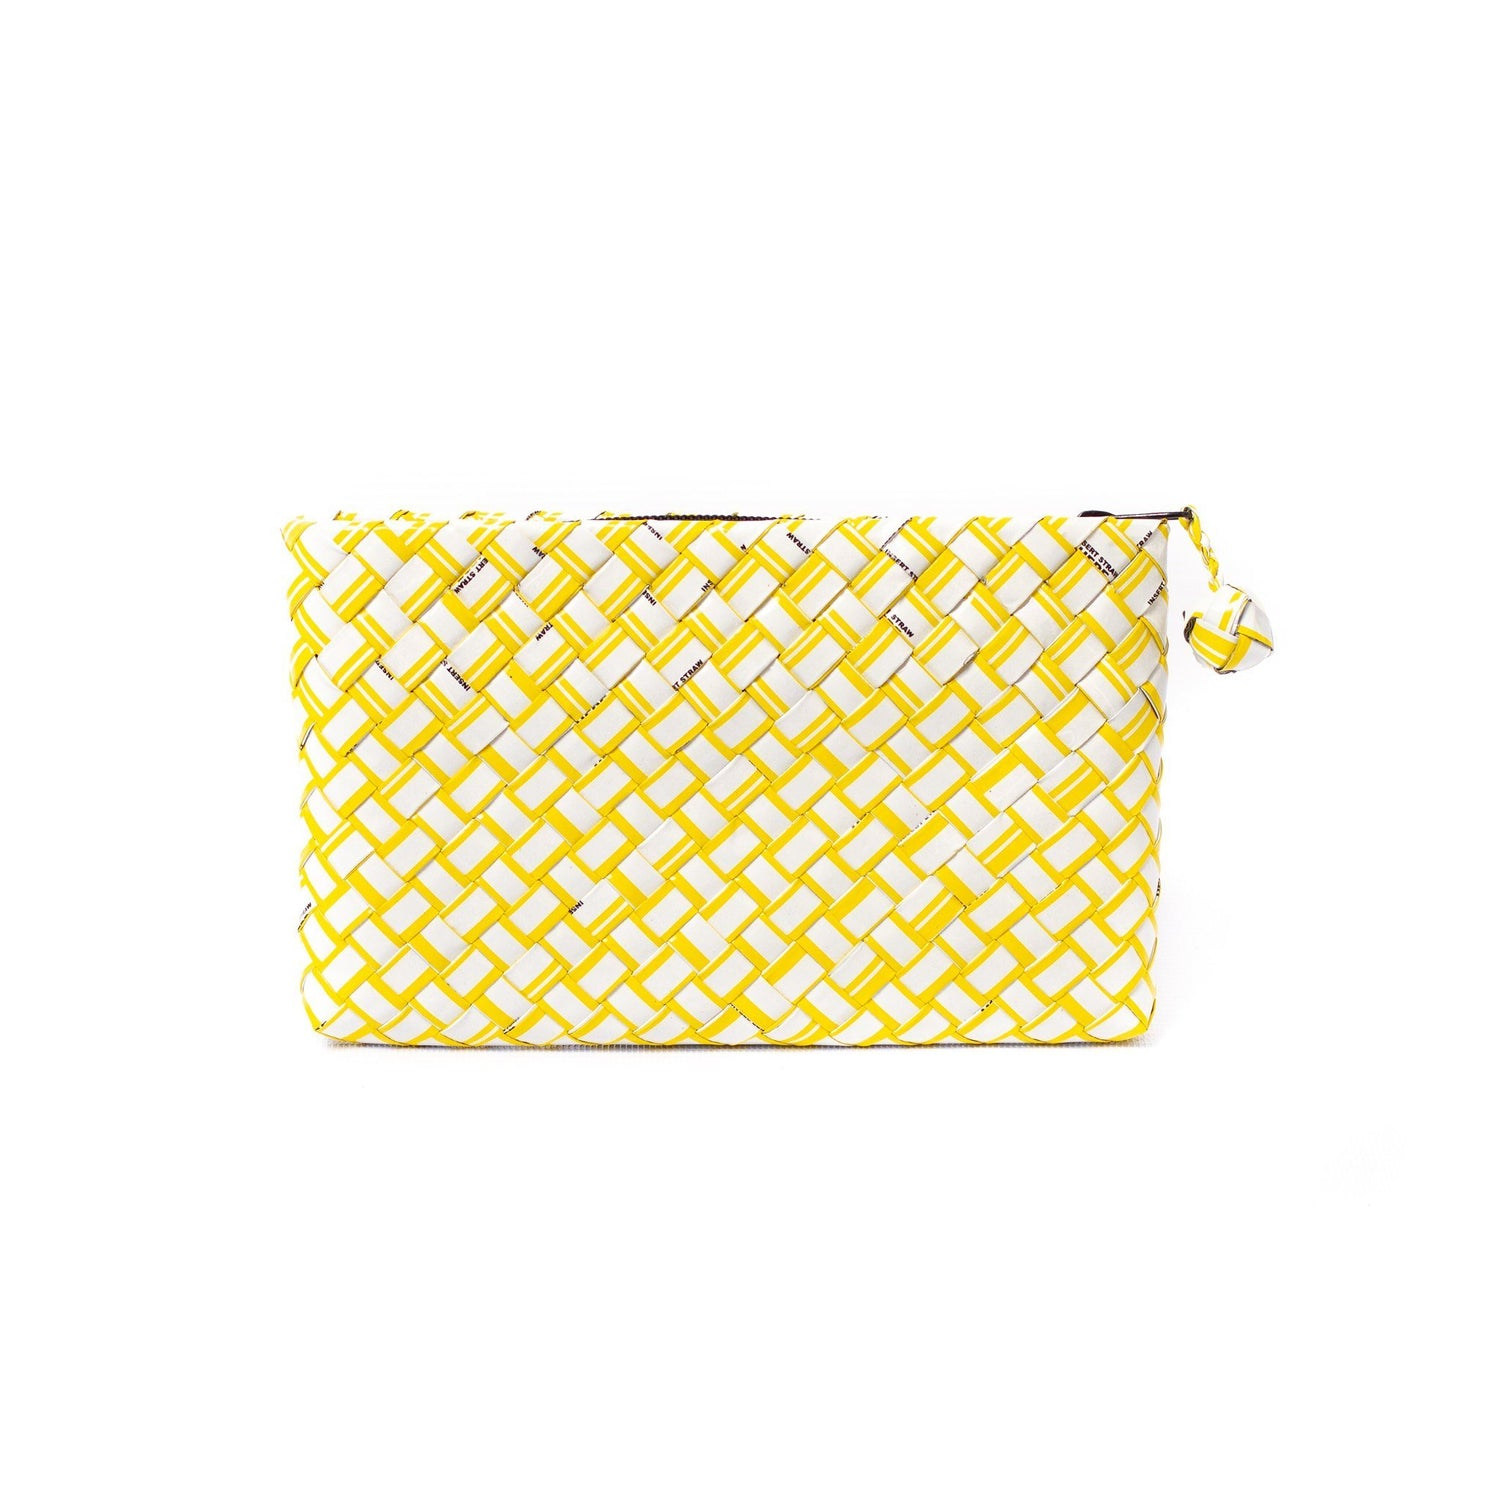 Mother Erth Limited Edition - Yellow Woven Clutch Bags Mother Erth